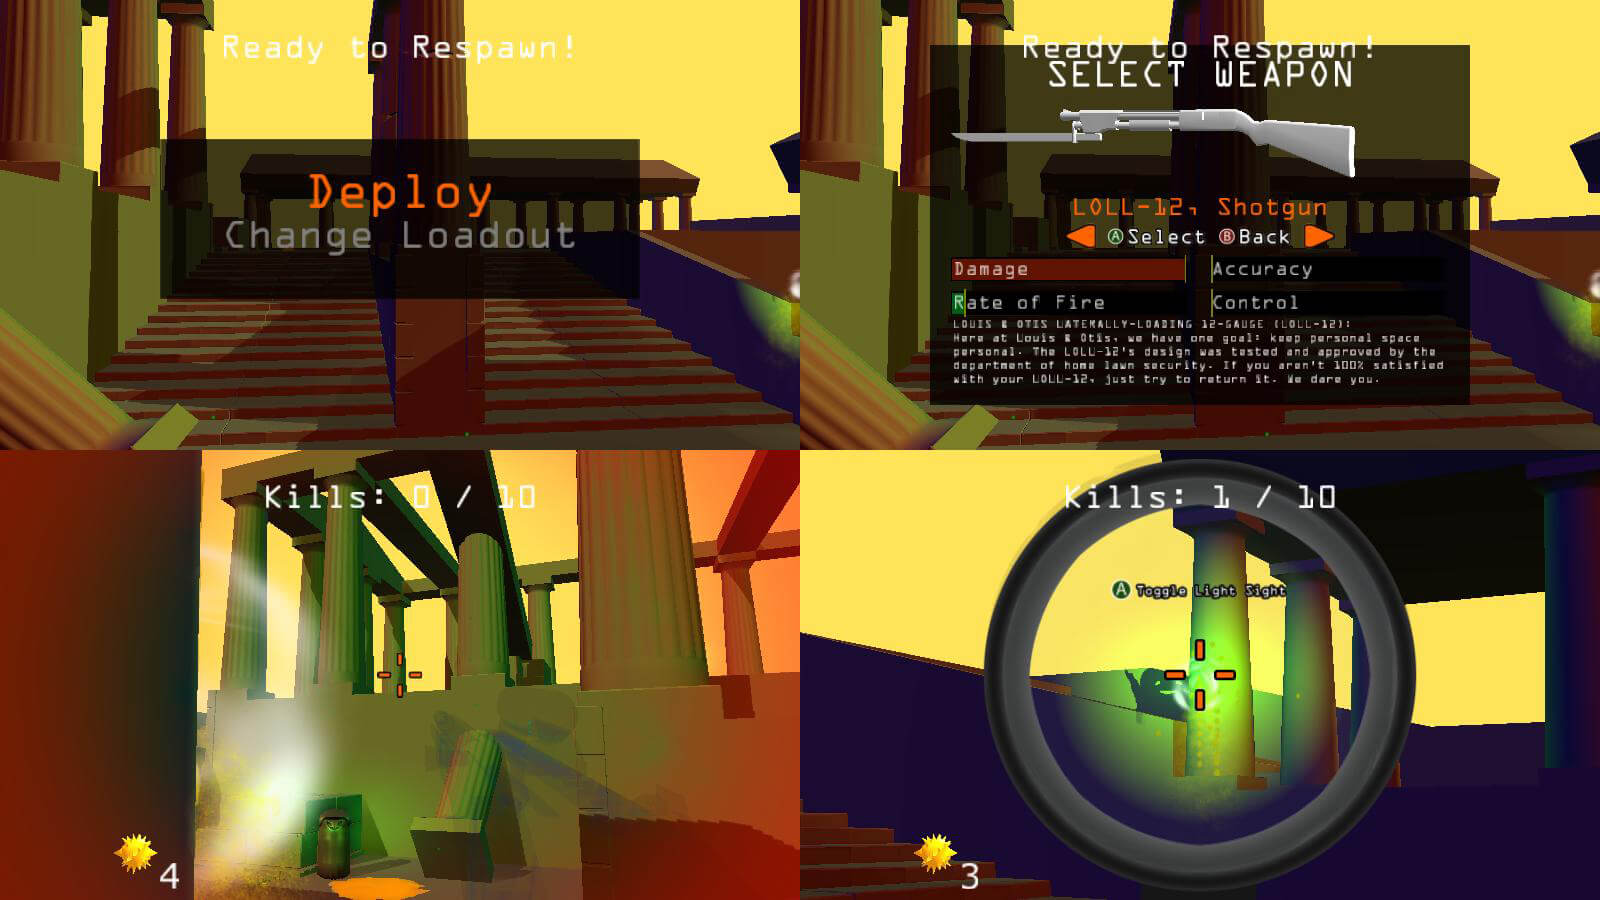 A four-player split-screen view with one player choosing a different weapon.